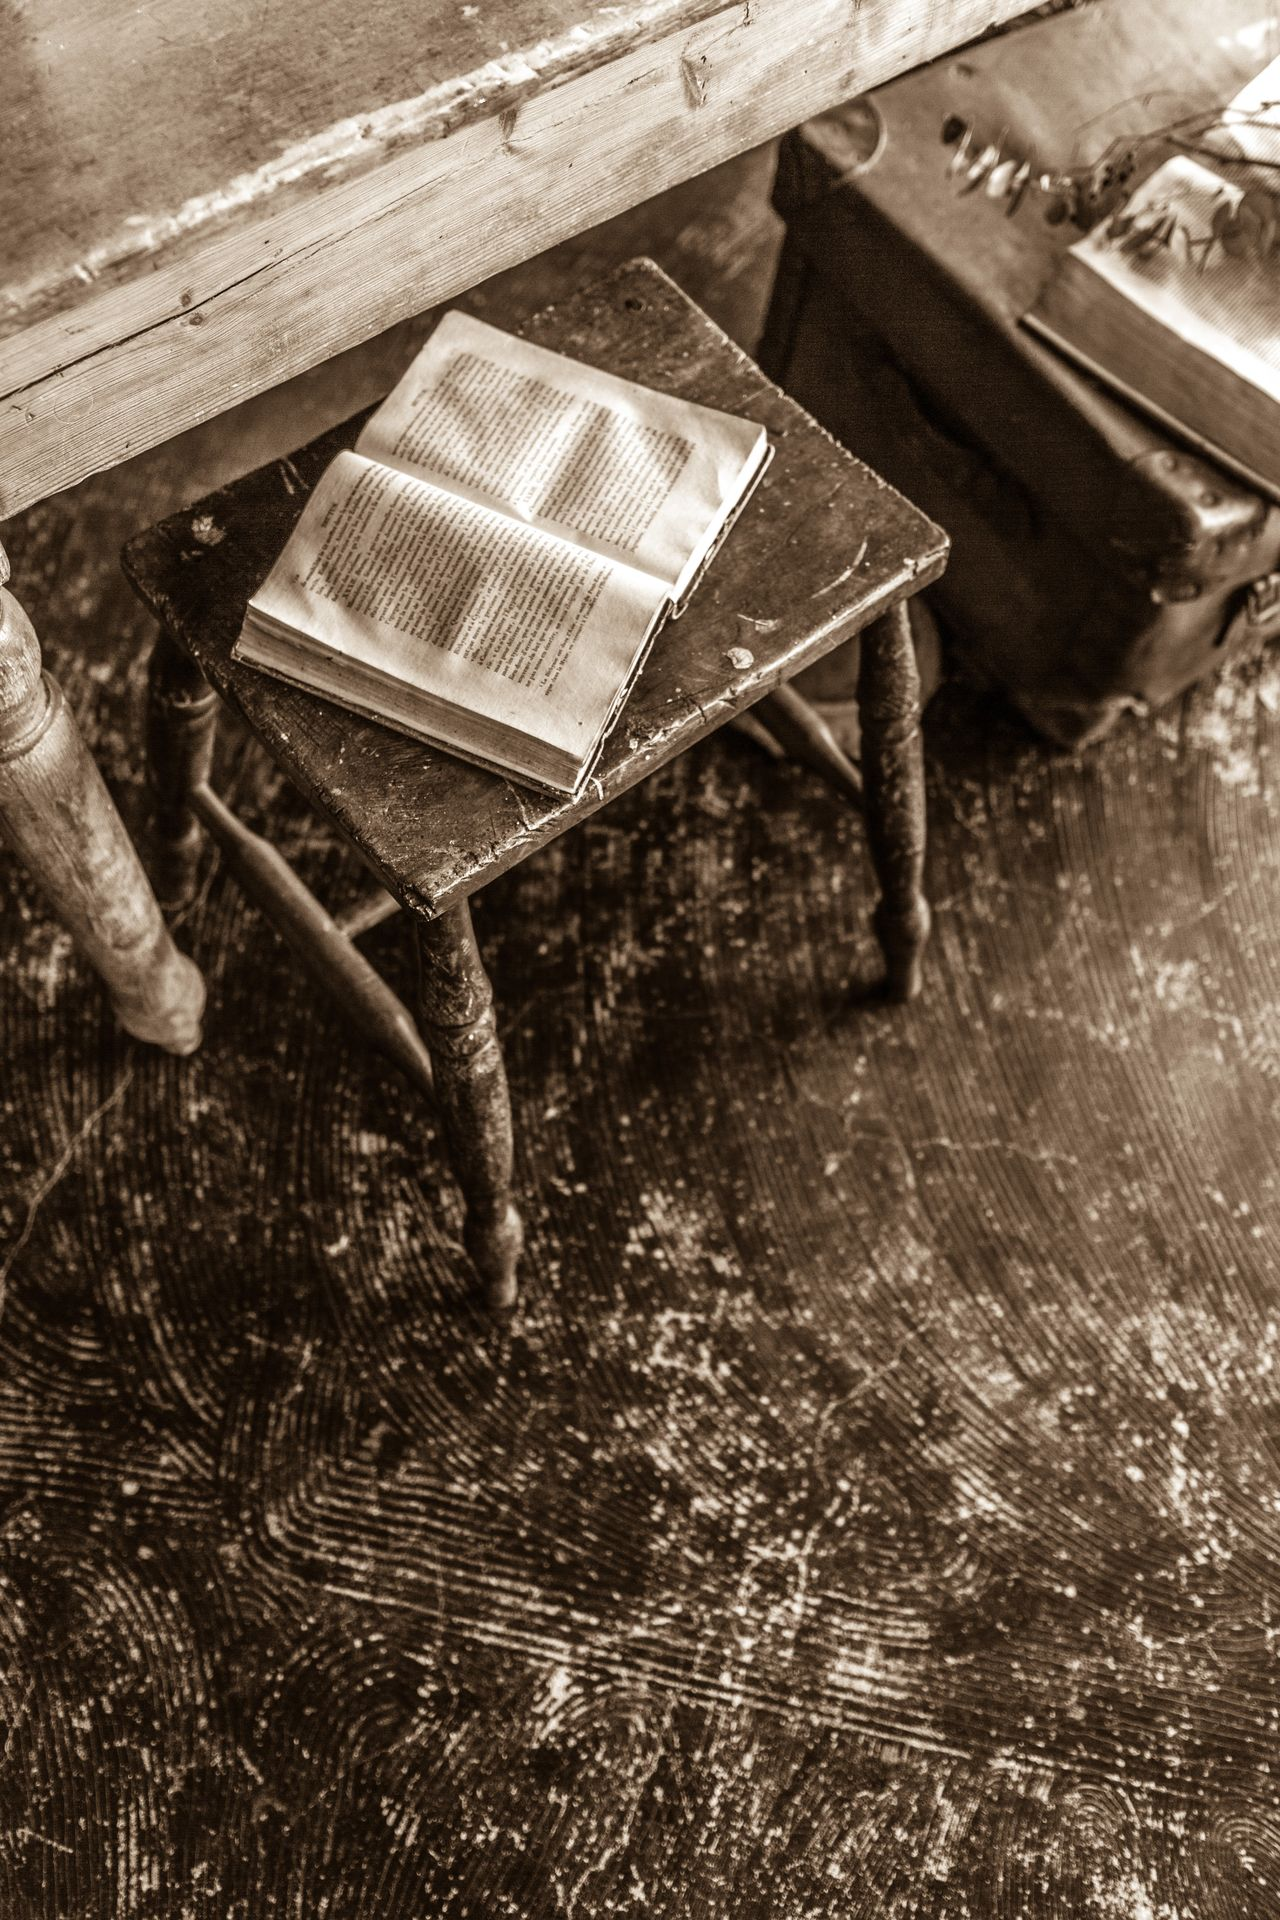 If you put your book on the stool I have nowhere to sit. No People Indoors  Technology Table Old-fashioned Day Close-up Book Monochrome Photography Interior Booklover Books ♥ Sepia Monochrome Cafe Bookworm Stool Stools